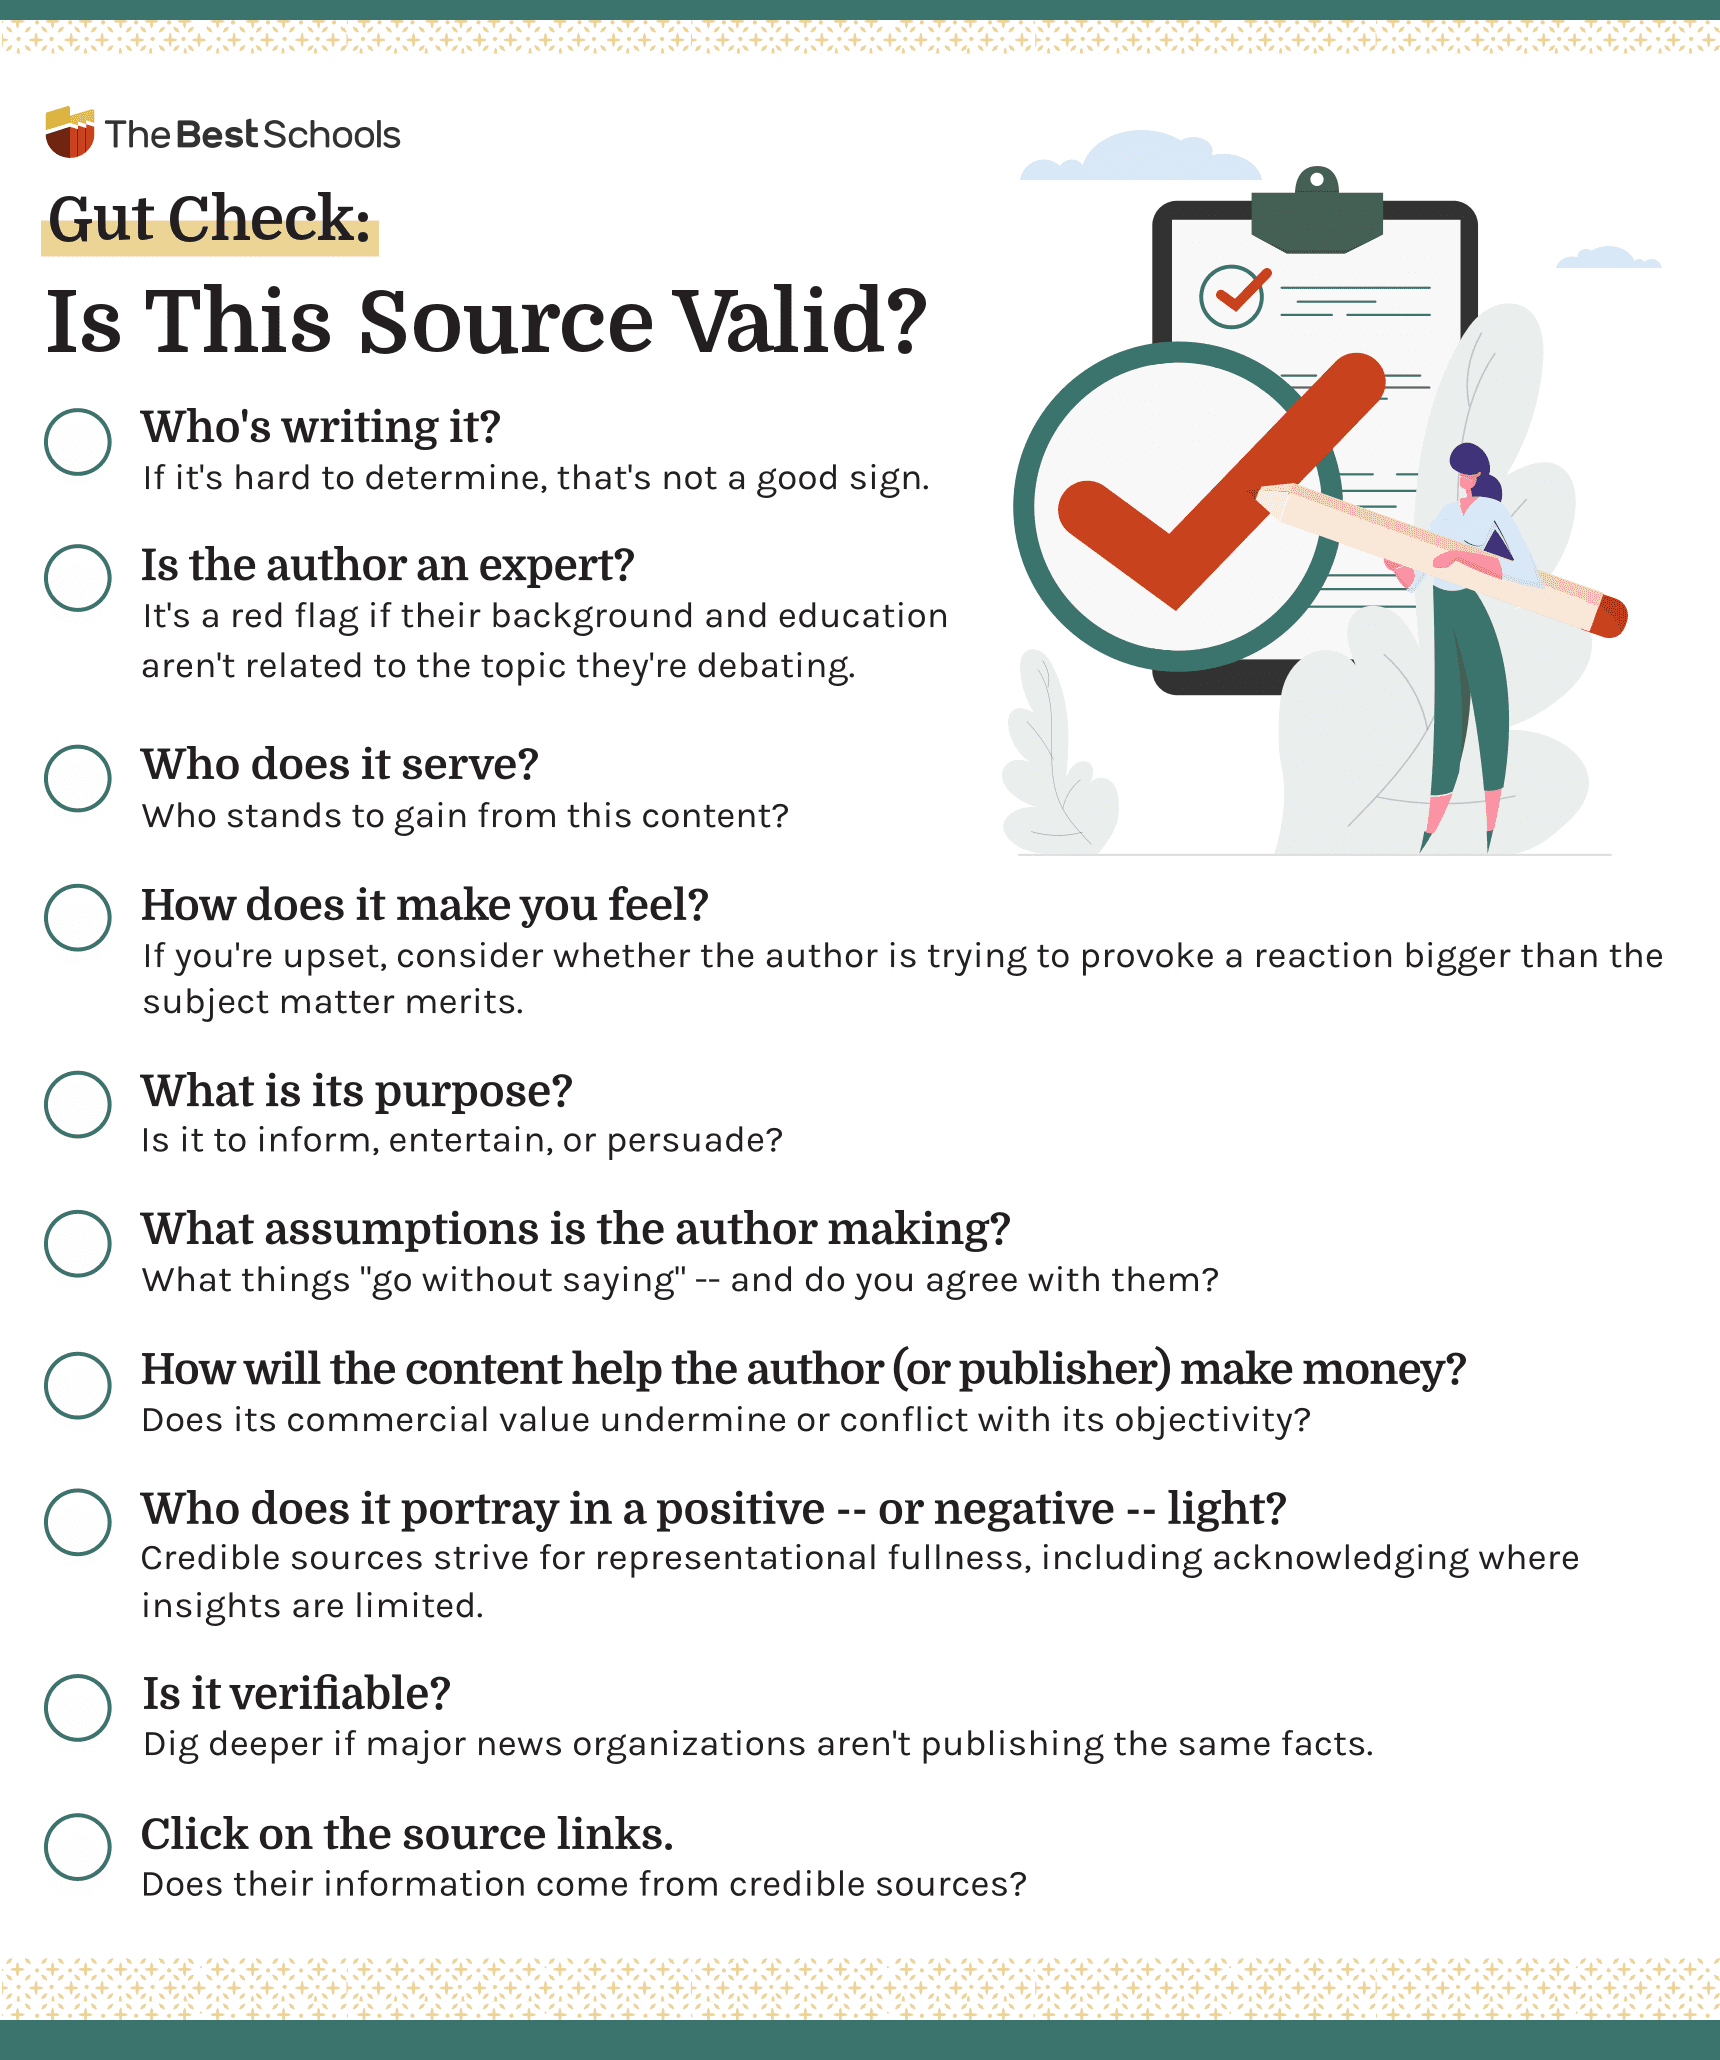 Infographic titled 'Gut Check: Is This Source Valid?' Text as follows: Who's writing it? If it's hard to determine, that's not a good sign. Is the author an expert? It's a red flag if their background and education aren't related to the topic they're debating. Who does it serve? Who stands to gain from this content? How does it make you feel? If you're feeling upset, consider whether the author is trying to provoke a reaction bigger than the subject matter merits. What is its purpose? Is it to inform, entertain, or persuade? What assumptions is the author making? What things go without saying – and do you agree with them? How will the content help the author (or publisher) make money? Does its commercial value undermine or conflict with its objectivity? Who does it portray in a positive – or negative – light? Credible sources strive for representational fullness, including acknowledging where insights are limited. Is it verifiable? Dig deeper if major news organizations aren't publishing the same facts. Click on the source links. Does their information come from credible sources?